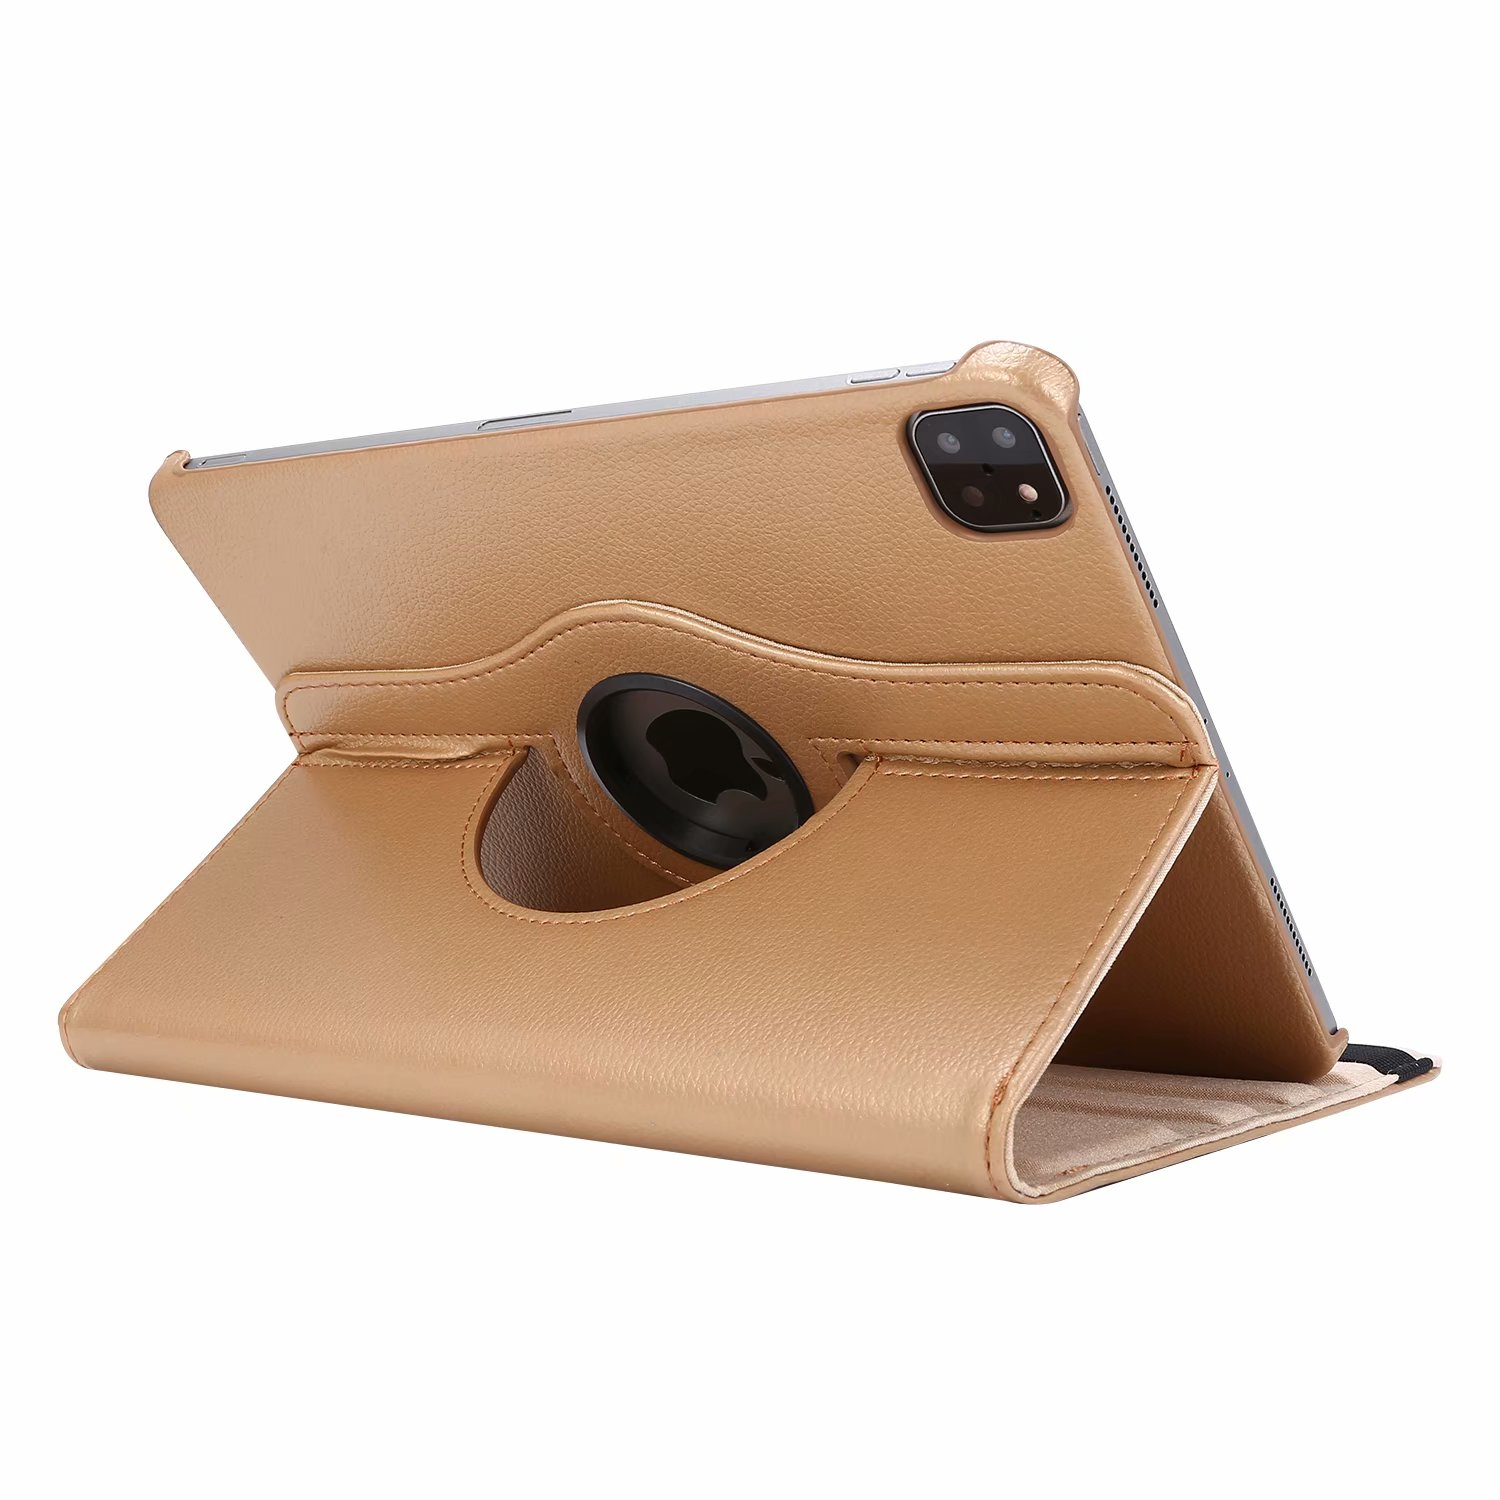 Gold Gold Case for iPad Pro 11 Cover 2021 2020 2018 A2228 A2068 A2230 A2013 A1934 A1980 360